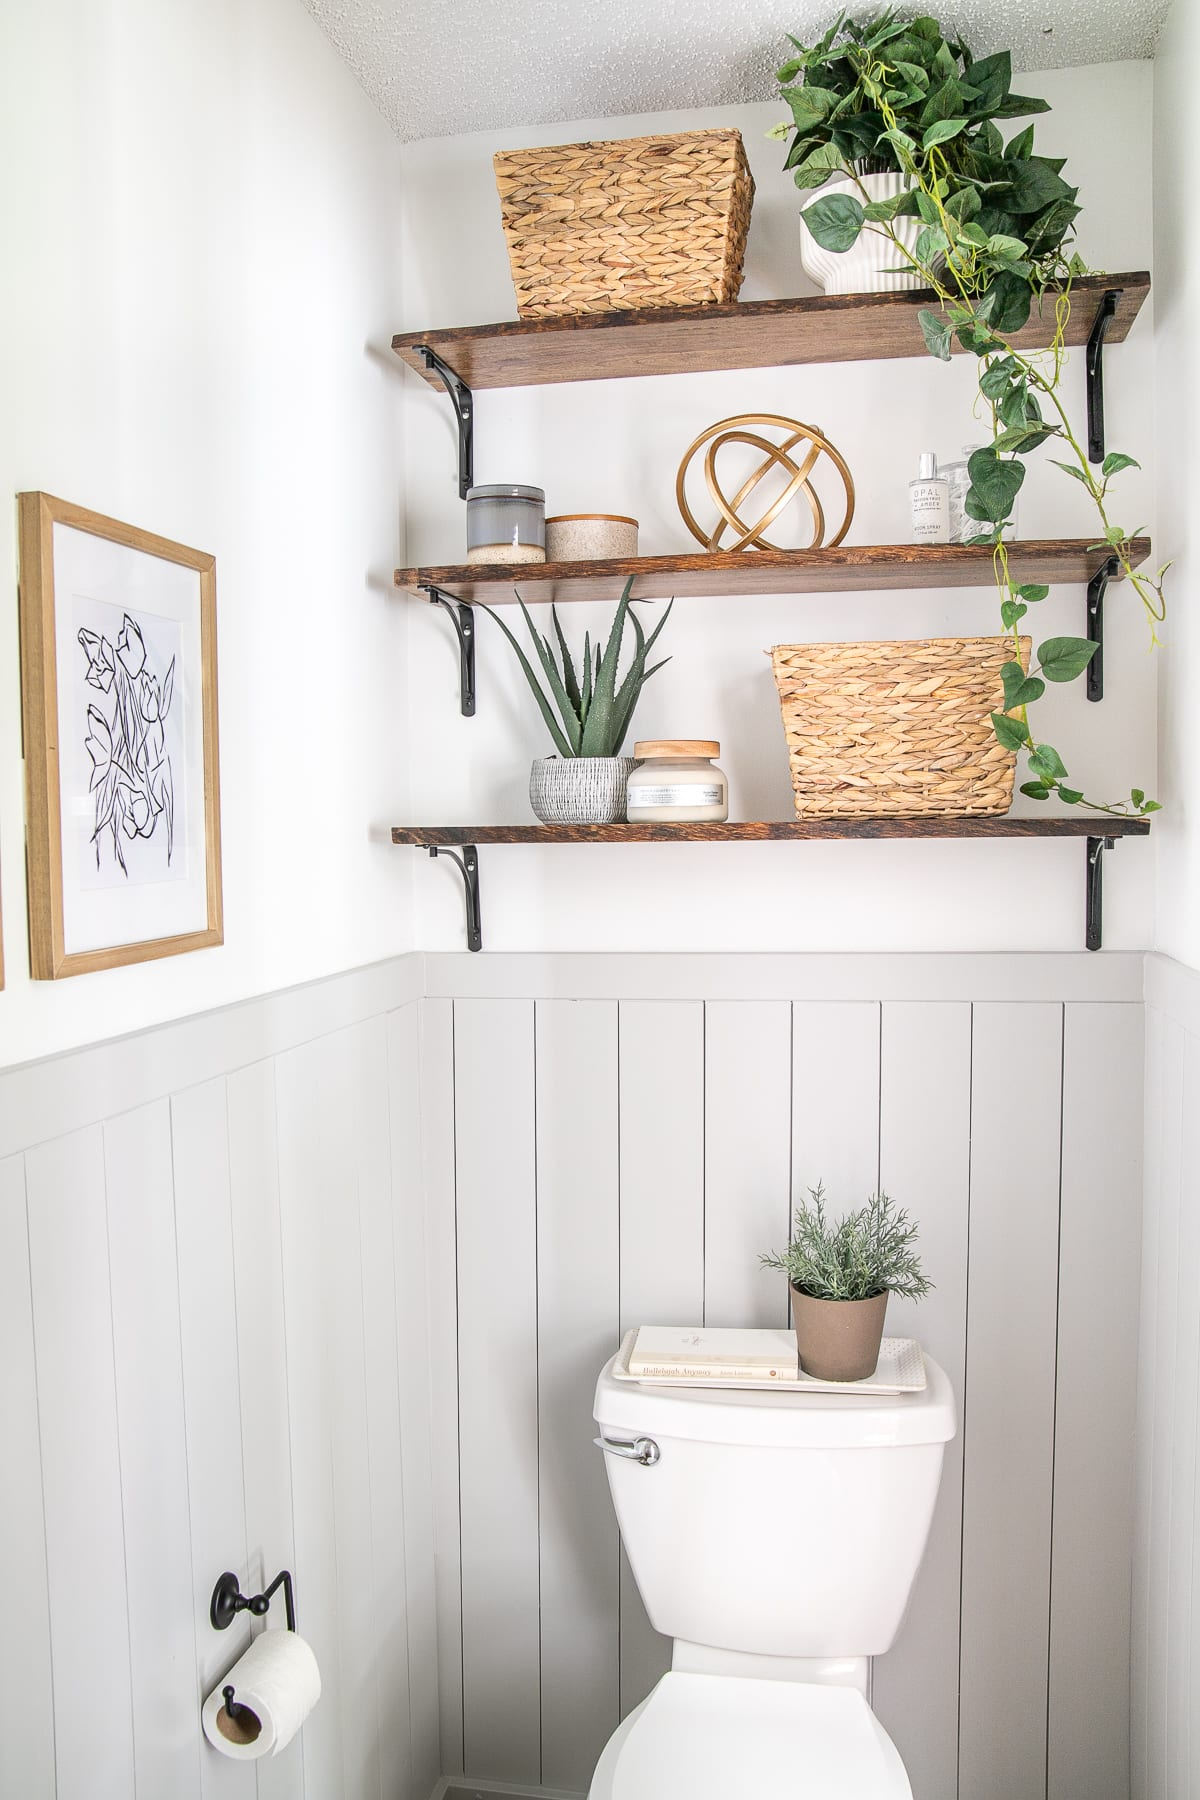 shelves above toilet in small bathroom